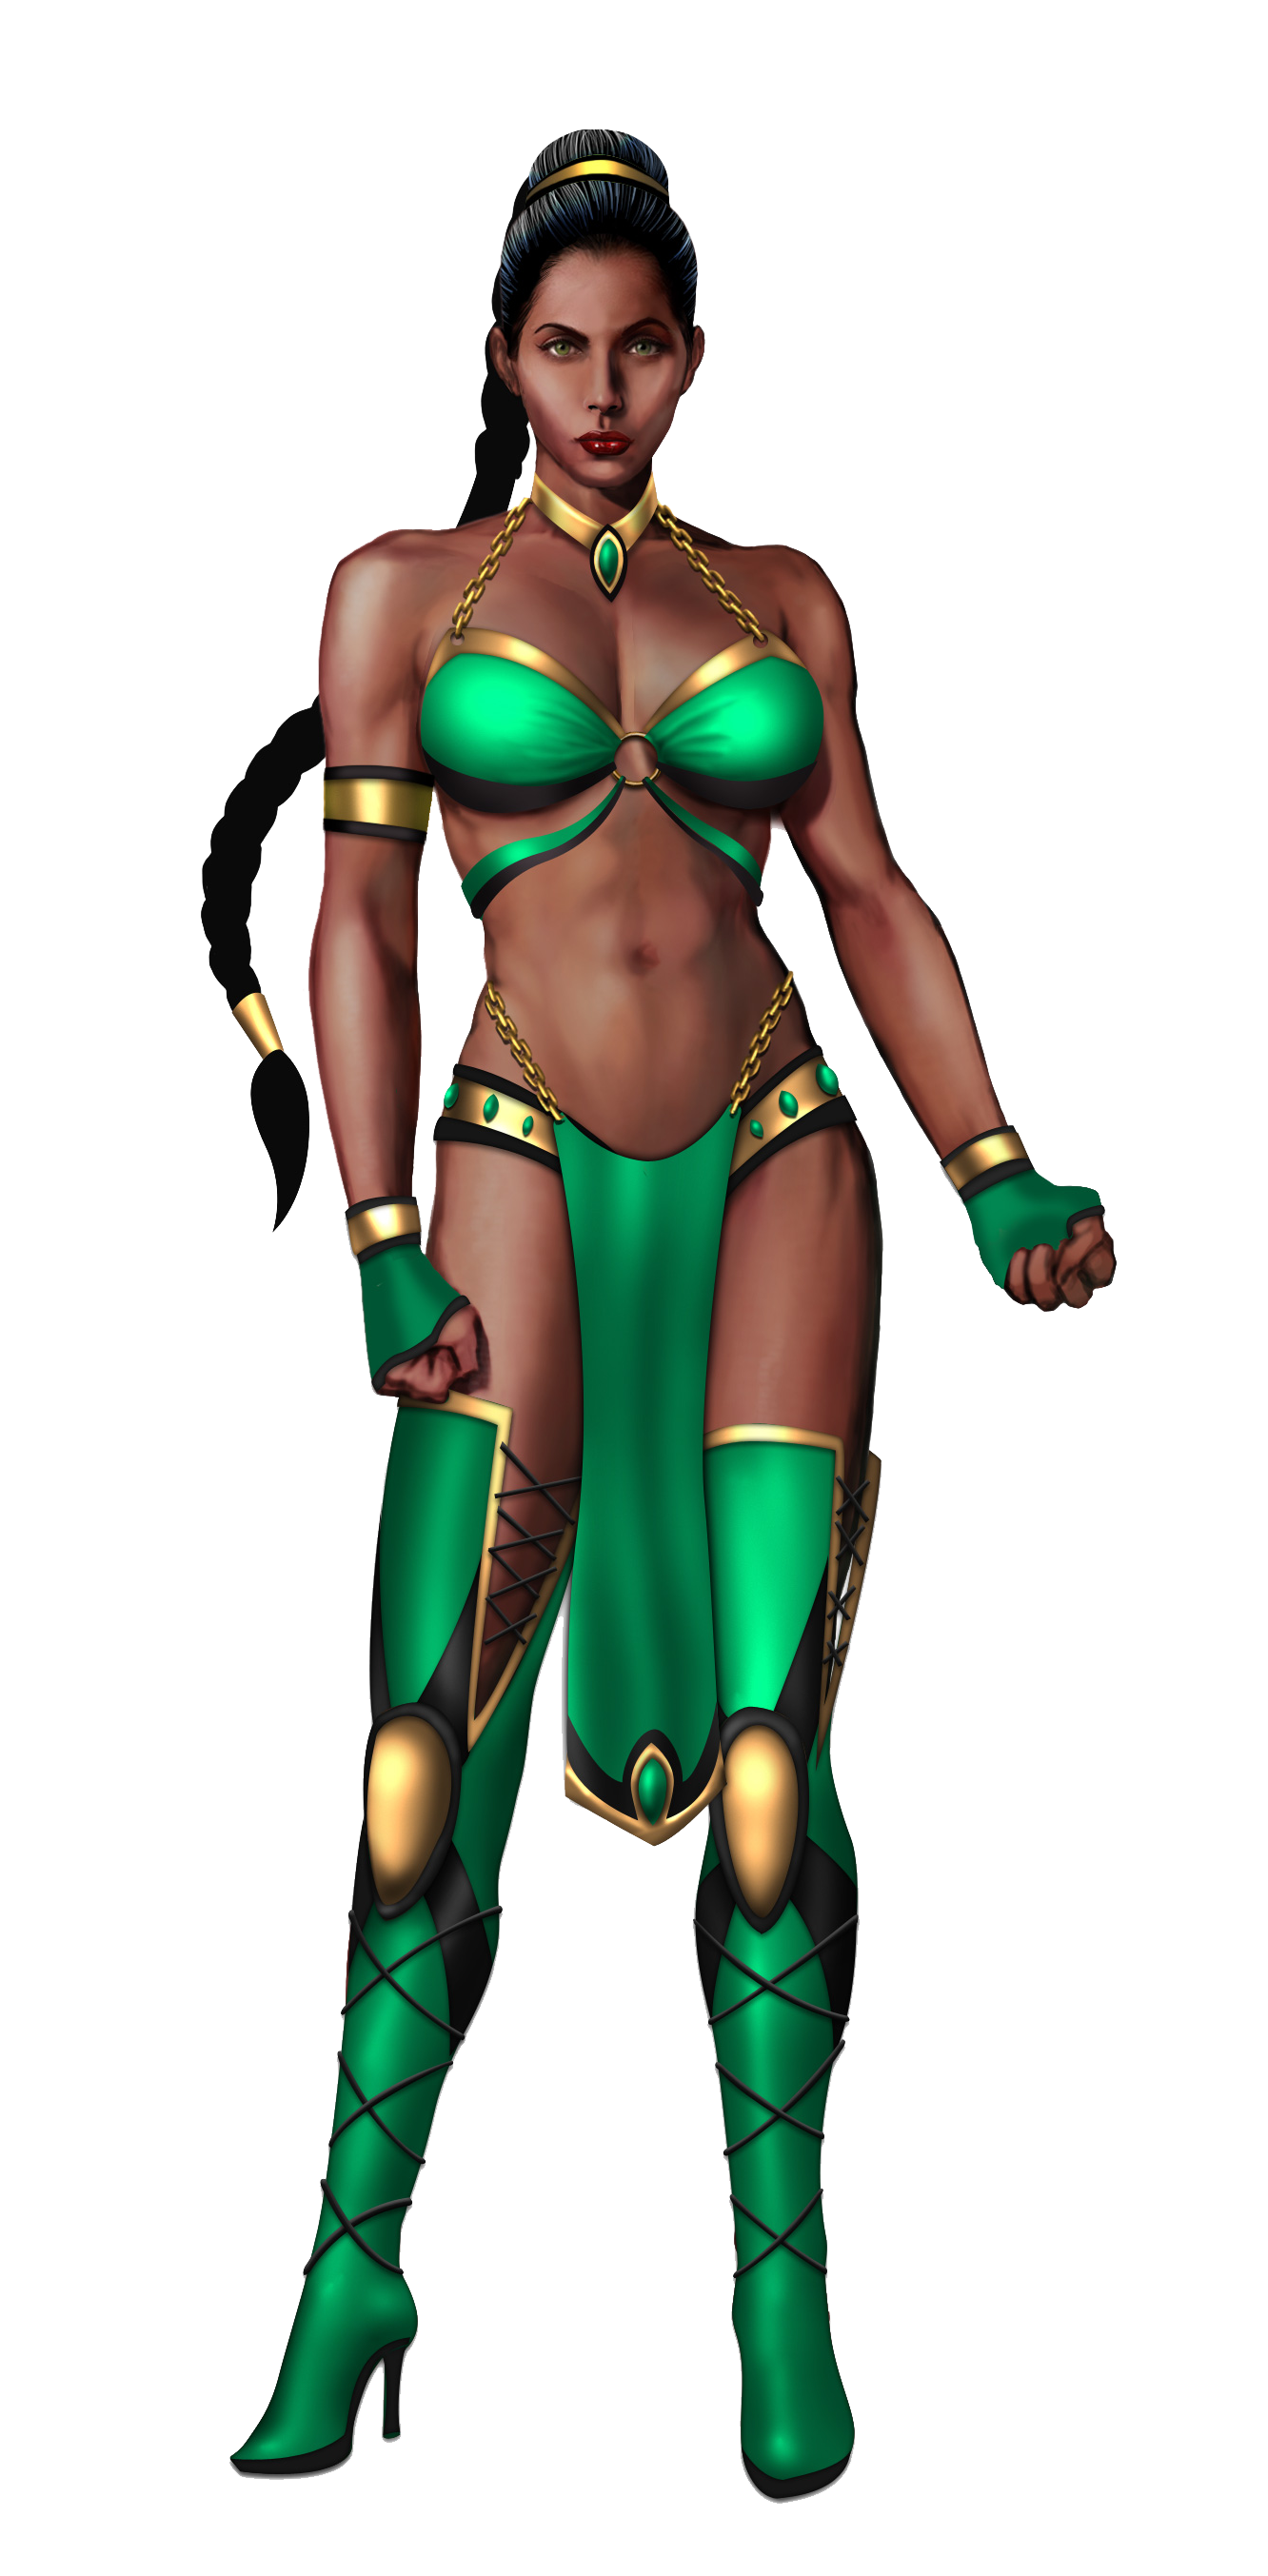 Jade Mk9 Mortal Kombat Fandom Powered By Wikia